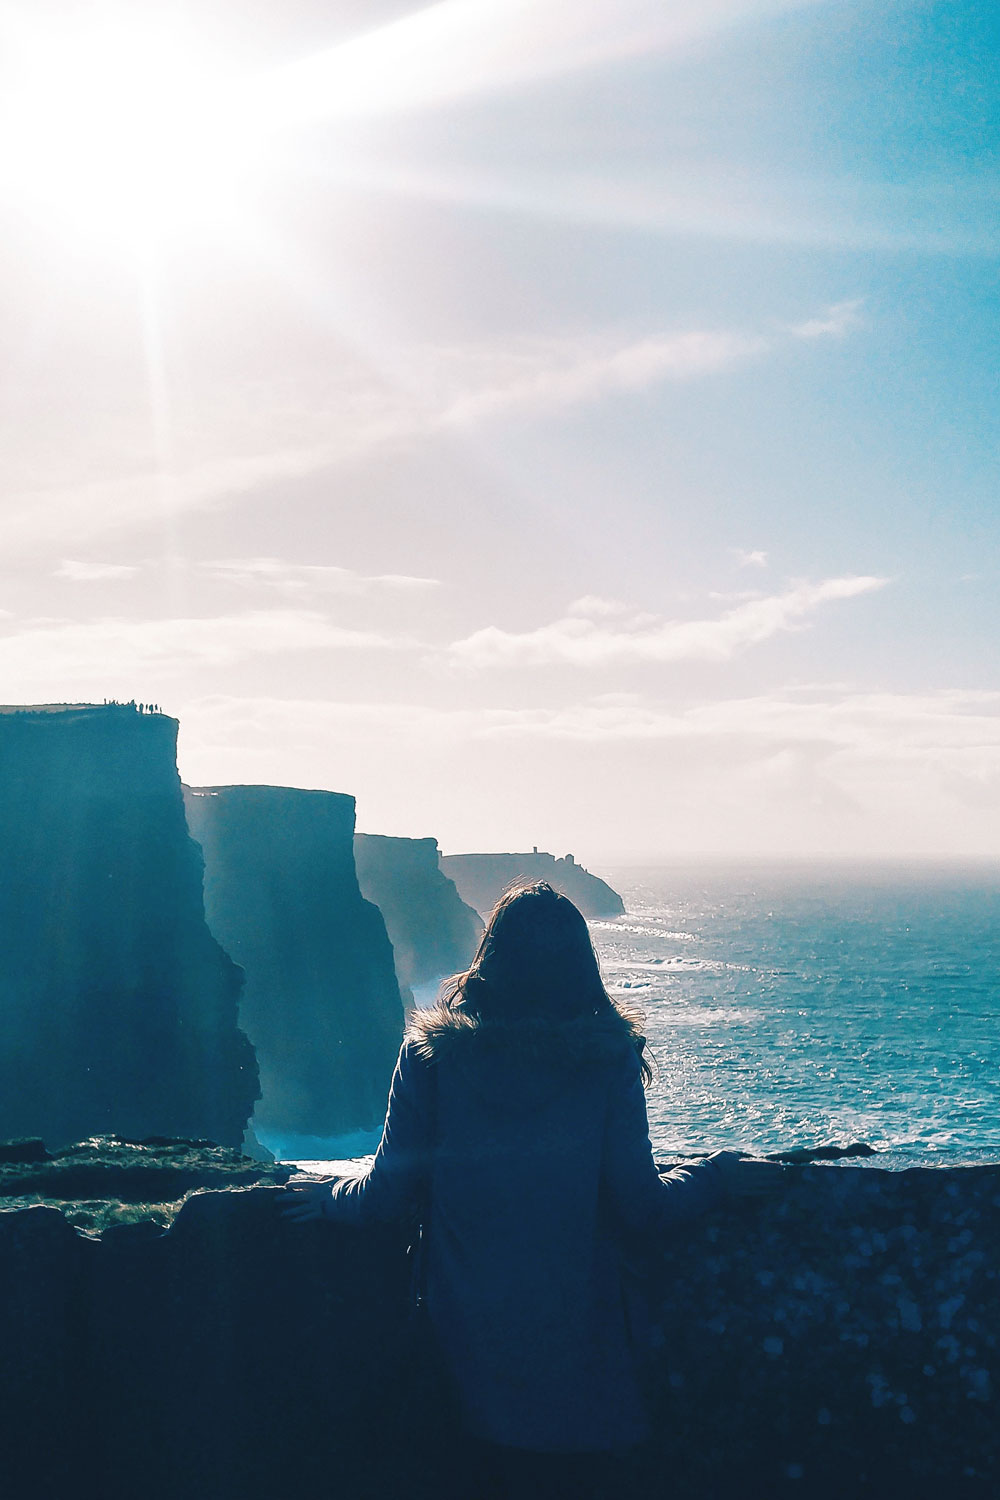 One week itinerary for Ireland, Galway, Cork, Dublin, Long Room Library, Trinity College, Ring of Kerry, Galway bay, What to see in Killarney, Dunguaire Castle, Cliffs of Moher, What to see in Dublin, What to see in Cork by To Vogue or Bust